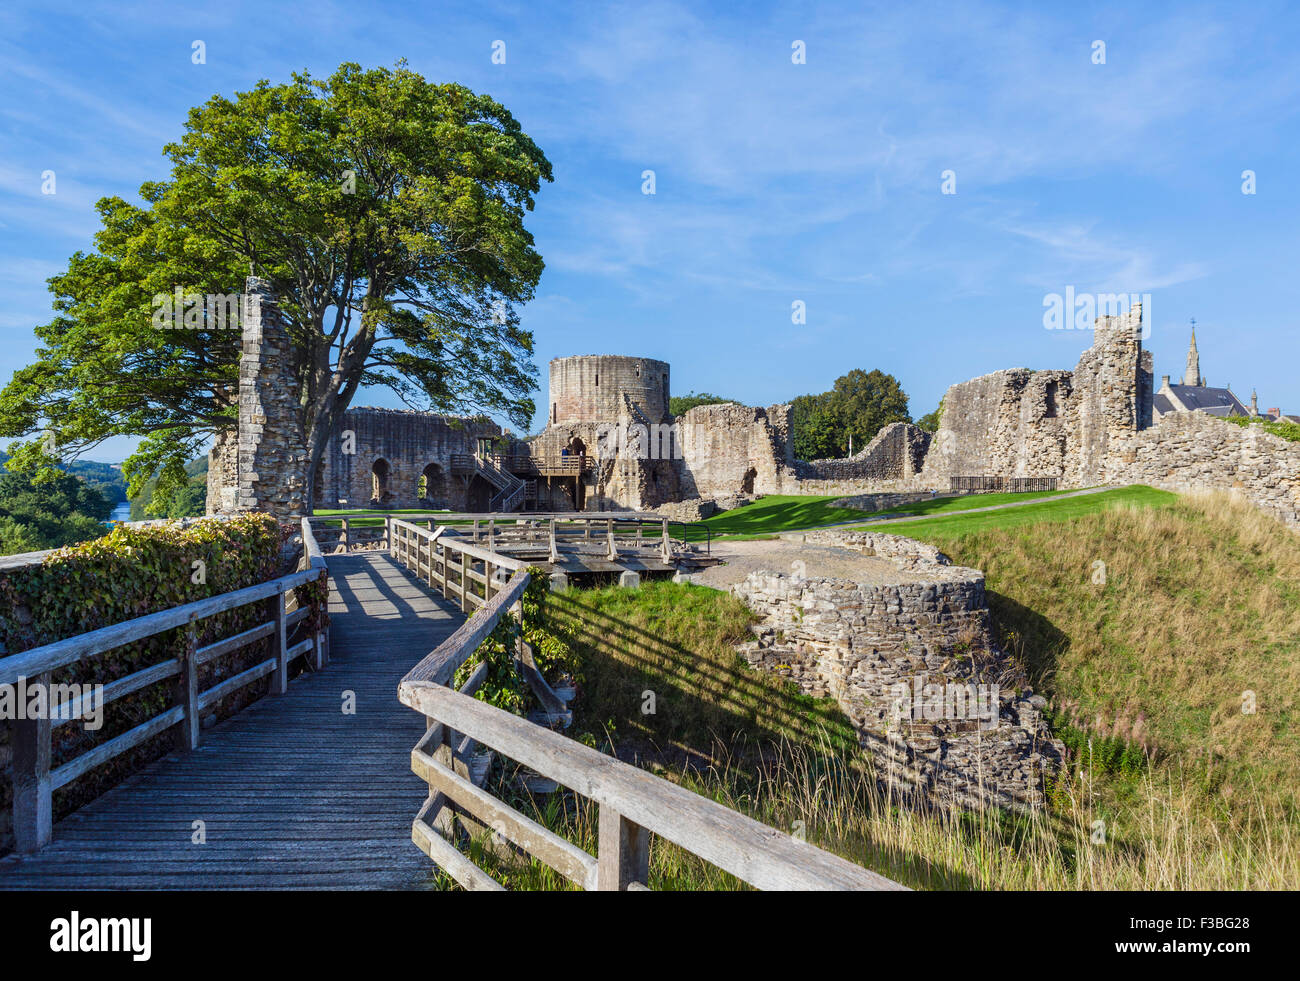 The Castle at Barnard Castle, County Durham, England, UK - Stock Image